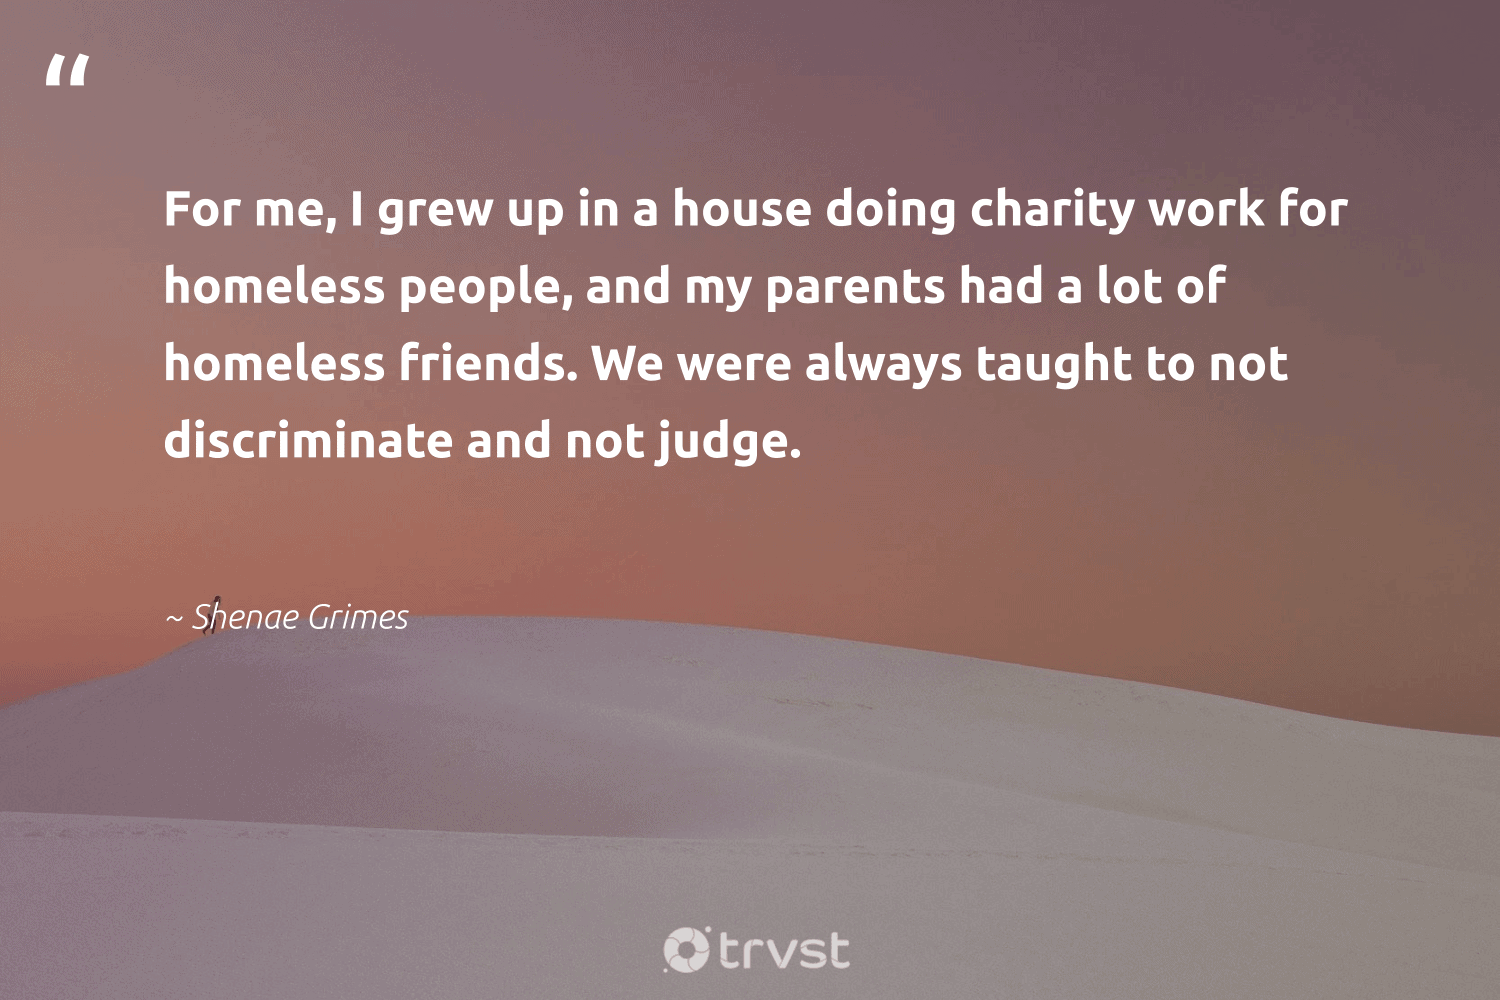 """""""For me, I grew up in a house doing charity work for homeless people, and my parents had a lot of homeless friends. We were always taught to not discriminate and not judge.""""  - Shenae Grimes #trvst #quotes #homeless #homelessness #betterplanet #makeadifference #planetearthfirst #society #sustainablefutures #changetheworld #giveback #weareallone"""